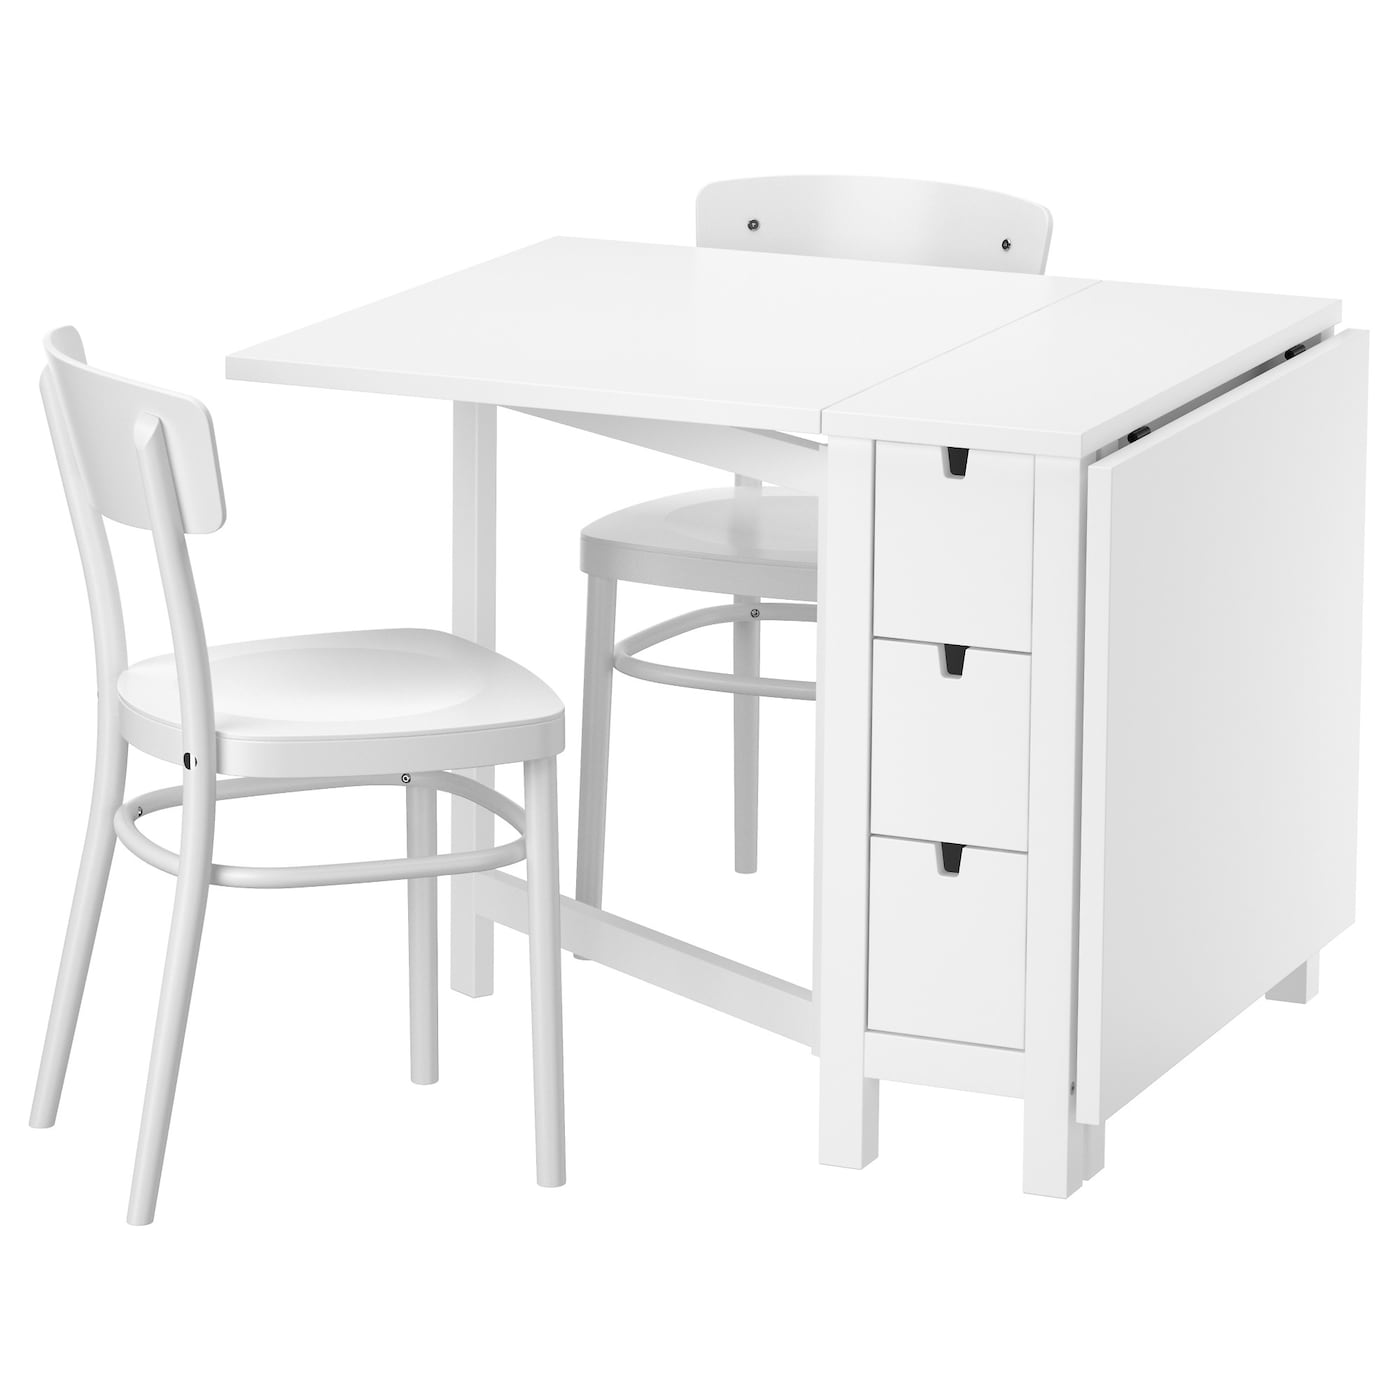 idolf norden table and 2 chairs white white 89 cm ikea. Black Bedroom Furniture Sets. Home Design Ideas